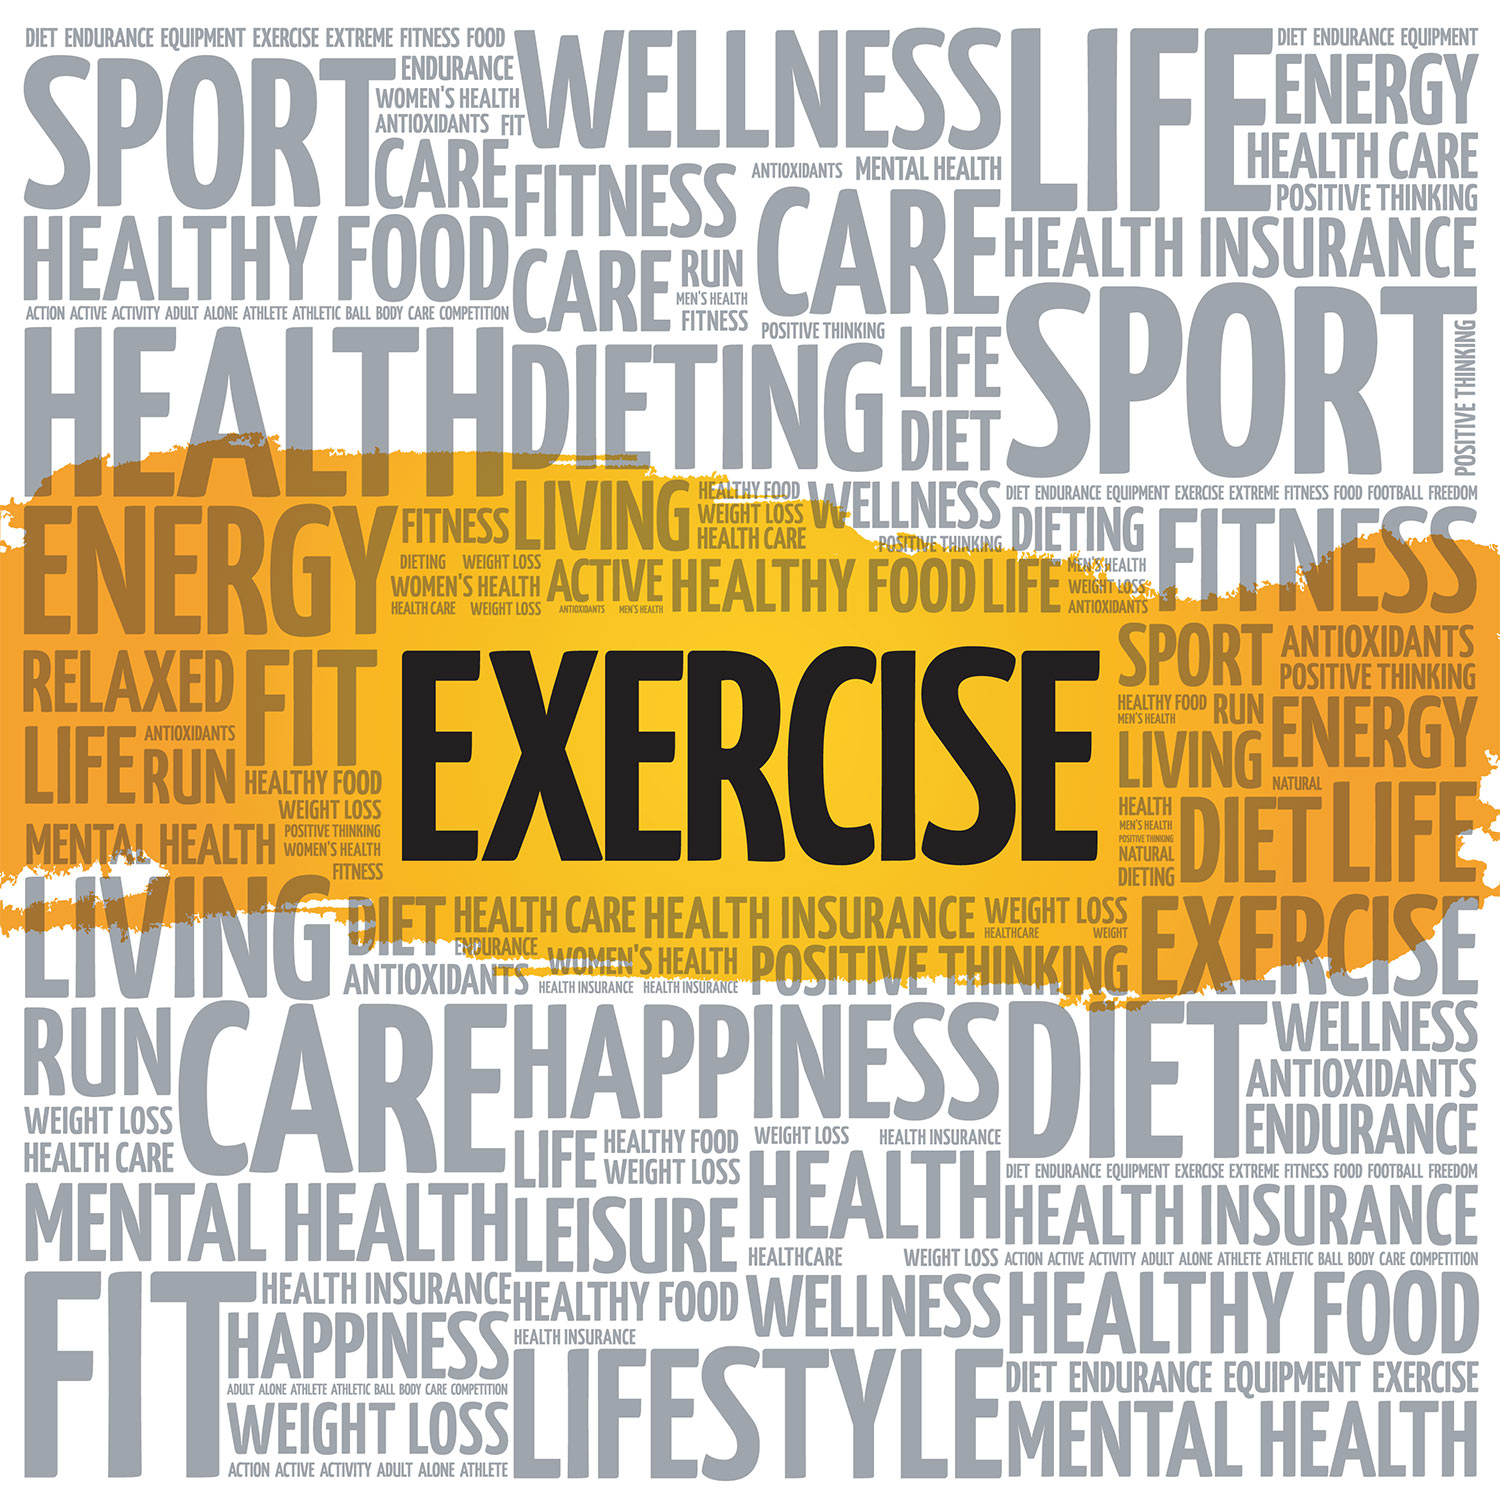 Free Download Exercise Wallpaper 80 Images In Collection Page 1 1500x1500 For Your Desktop Mobile Tablet Explore 43 Exercise Backgrounds Exercise Backgrounds Submit Wallpaper P90x Exercise Program